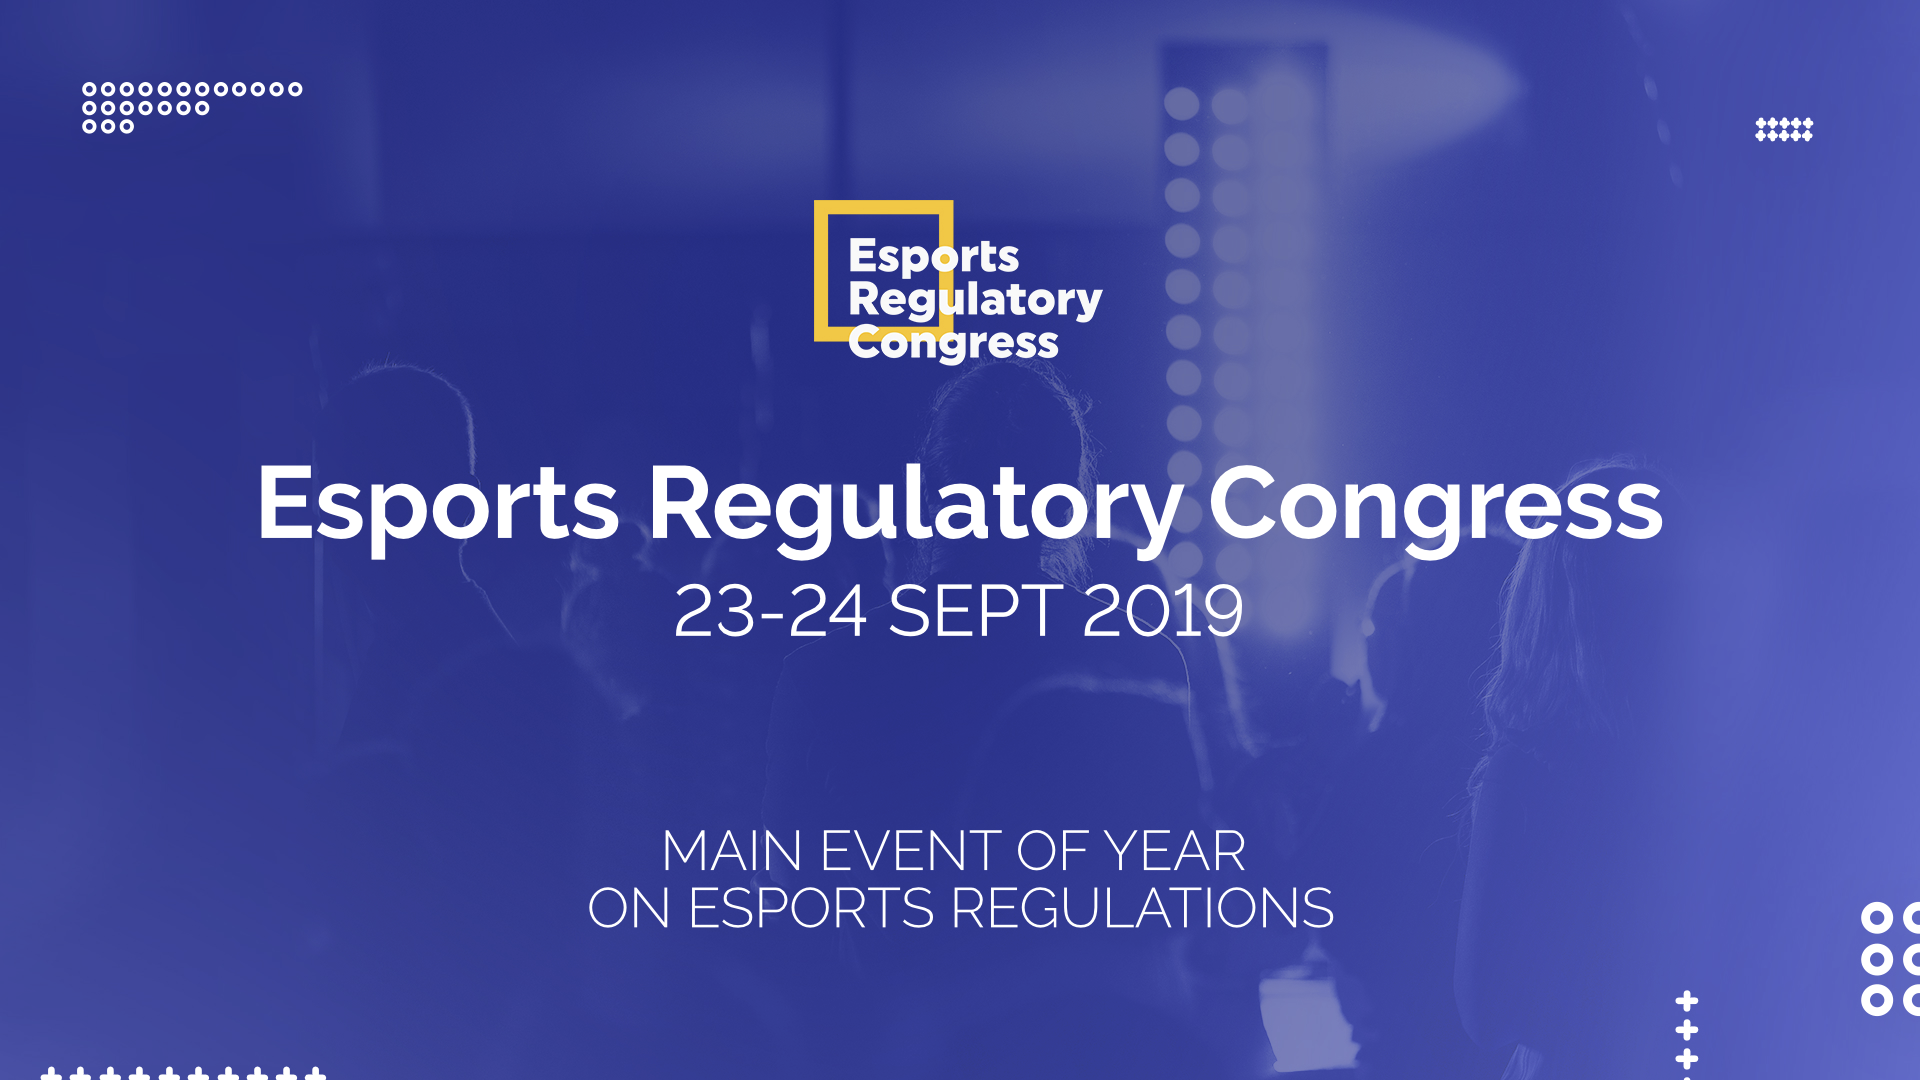 First International Esports Regulations Event to be held in Europe